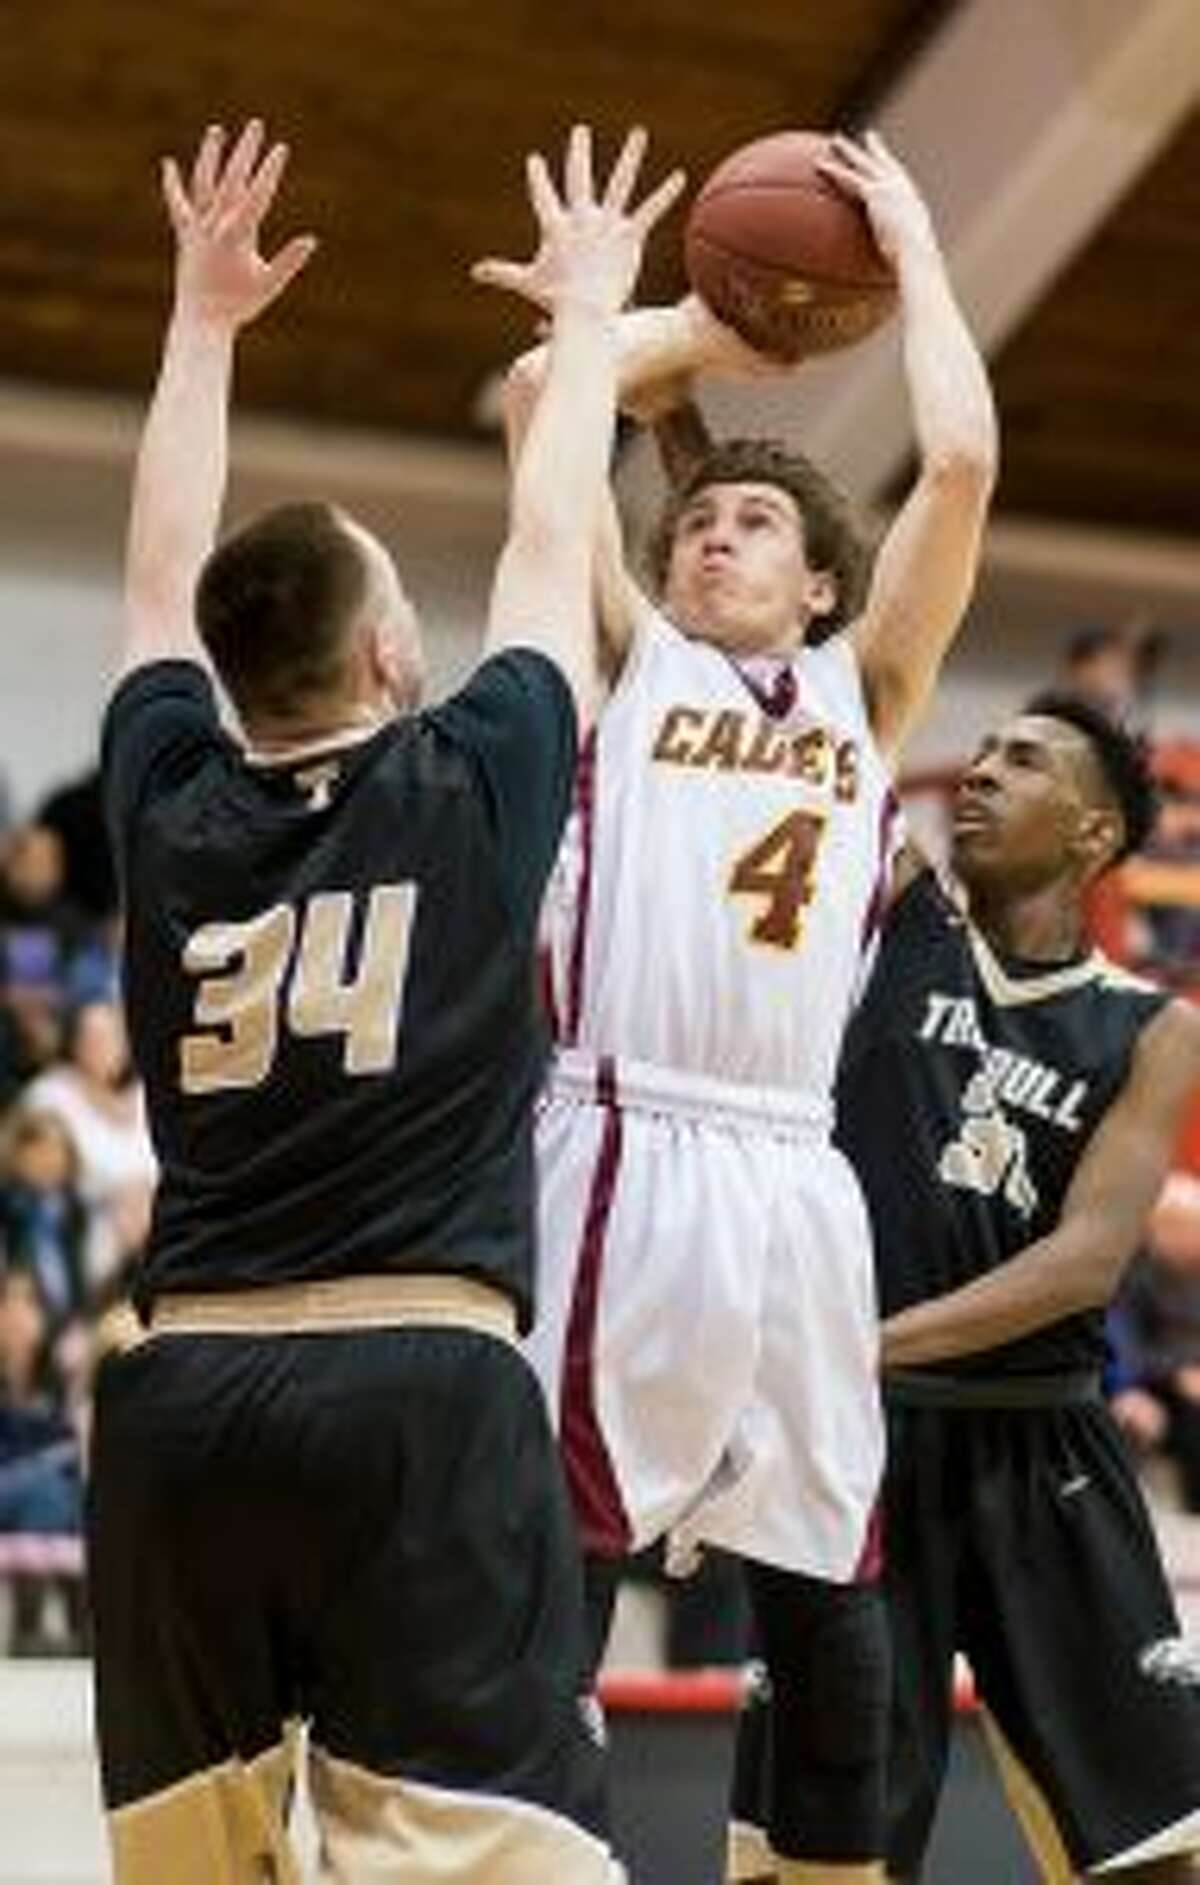 St. Joseph's Dan Tobin scored nine points in the third quarter to lead a Cadet come back.